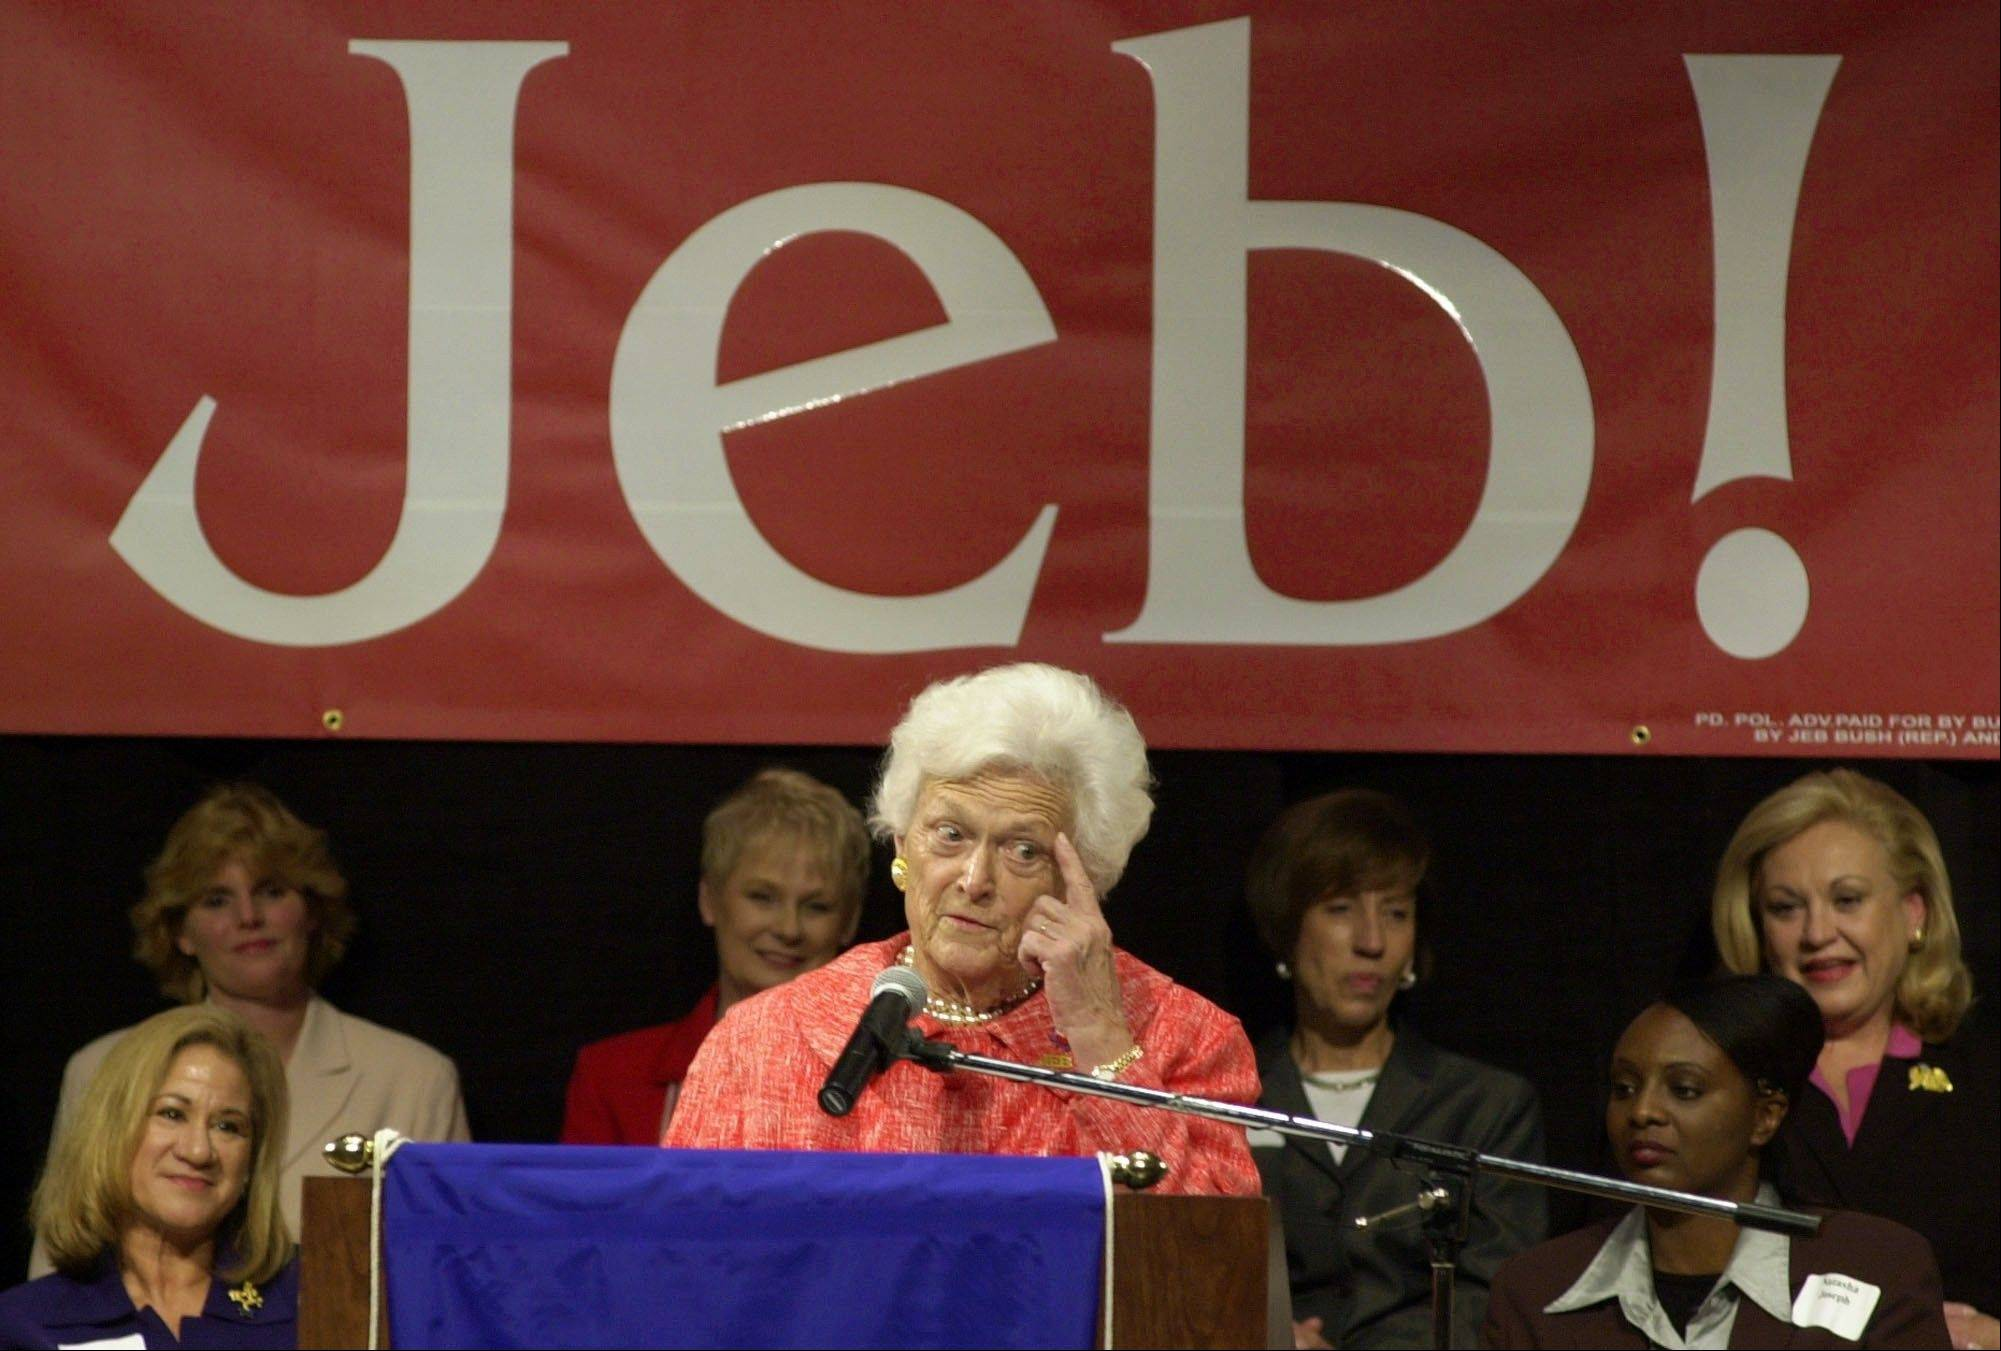 Barbara Bush on Jeb run: 'We've had enough Bushes'